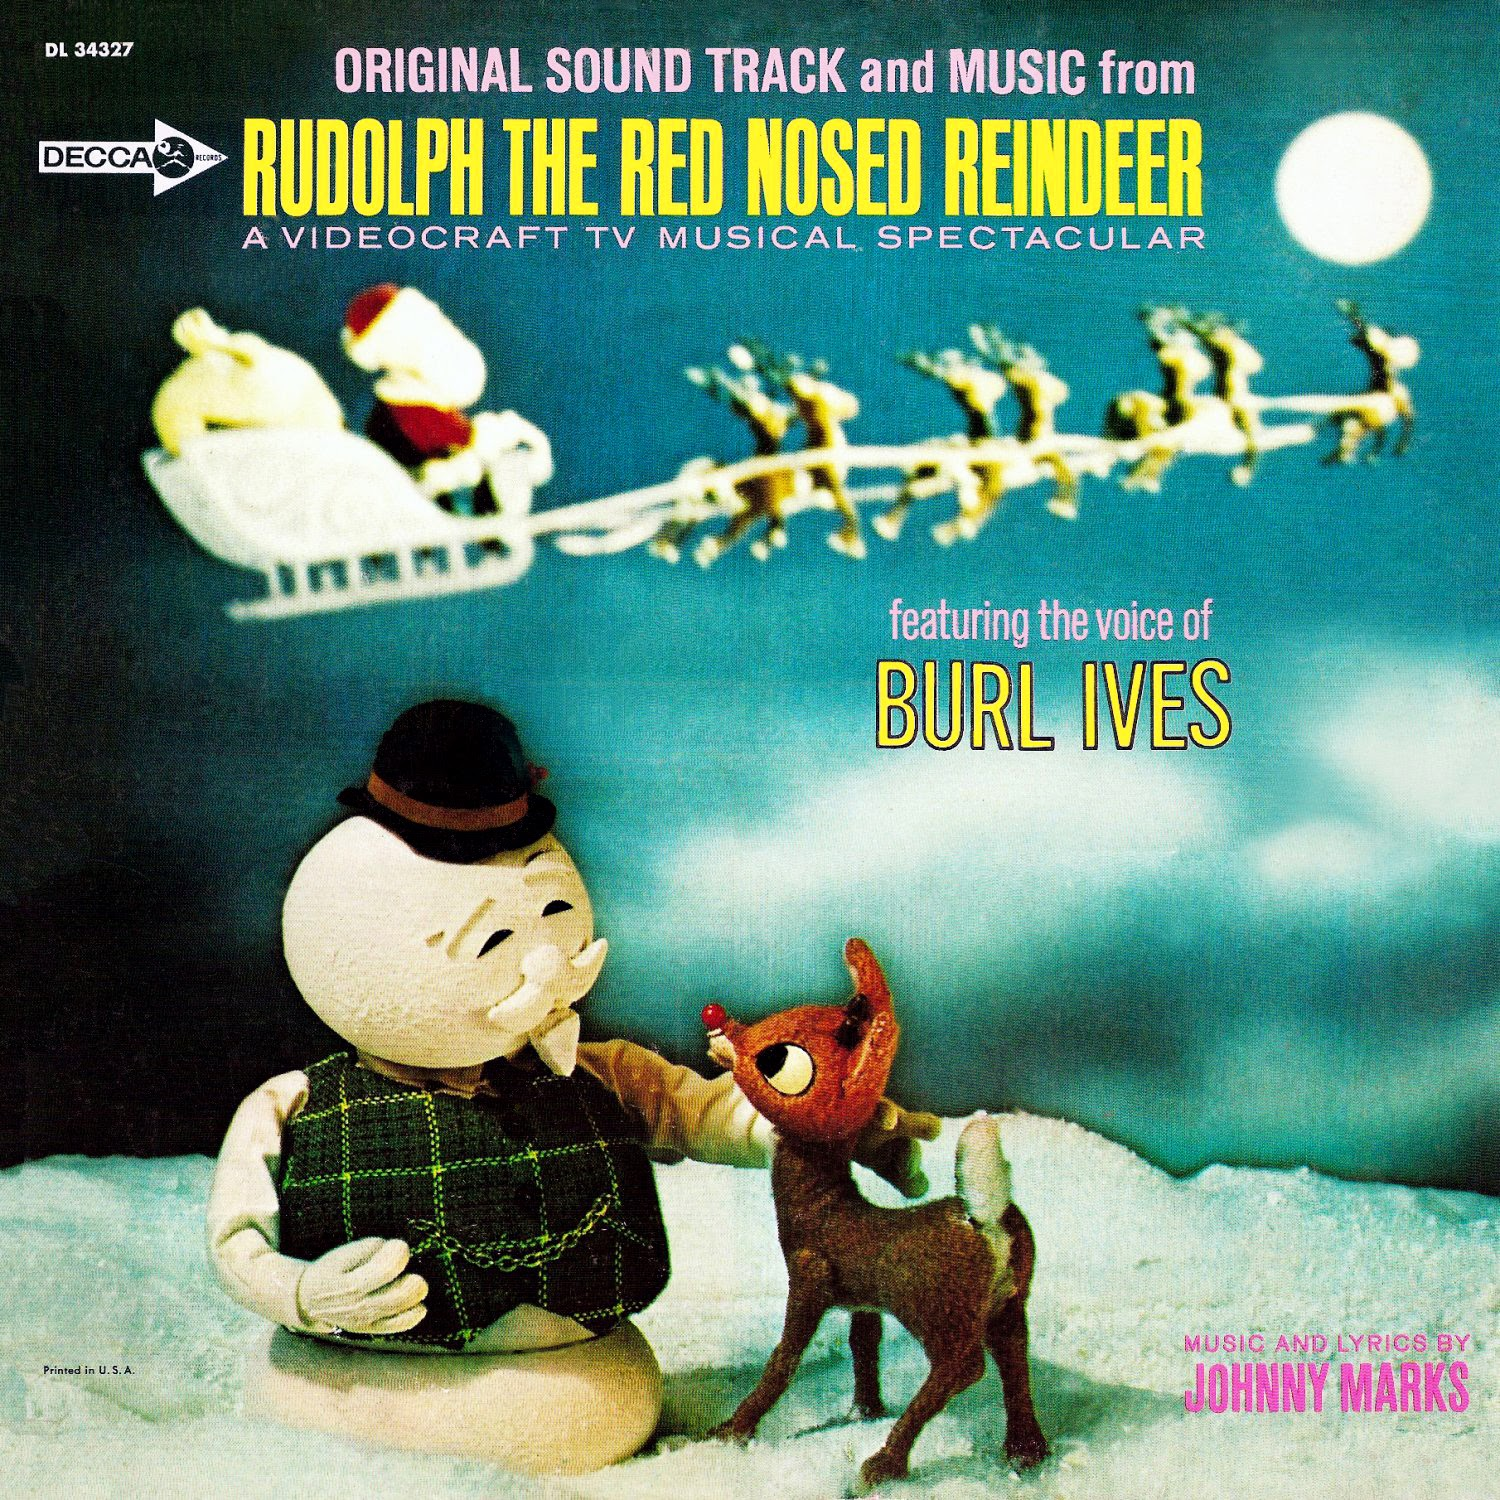 Burl Ives, Johnny Marks